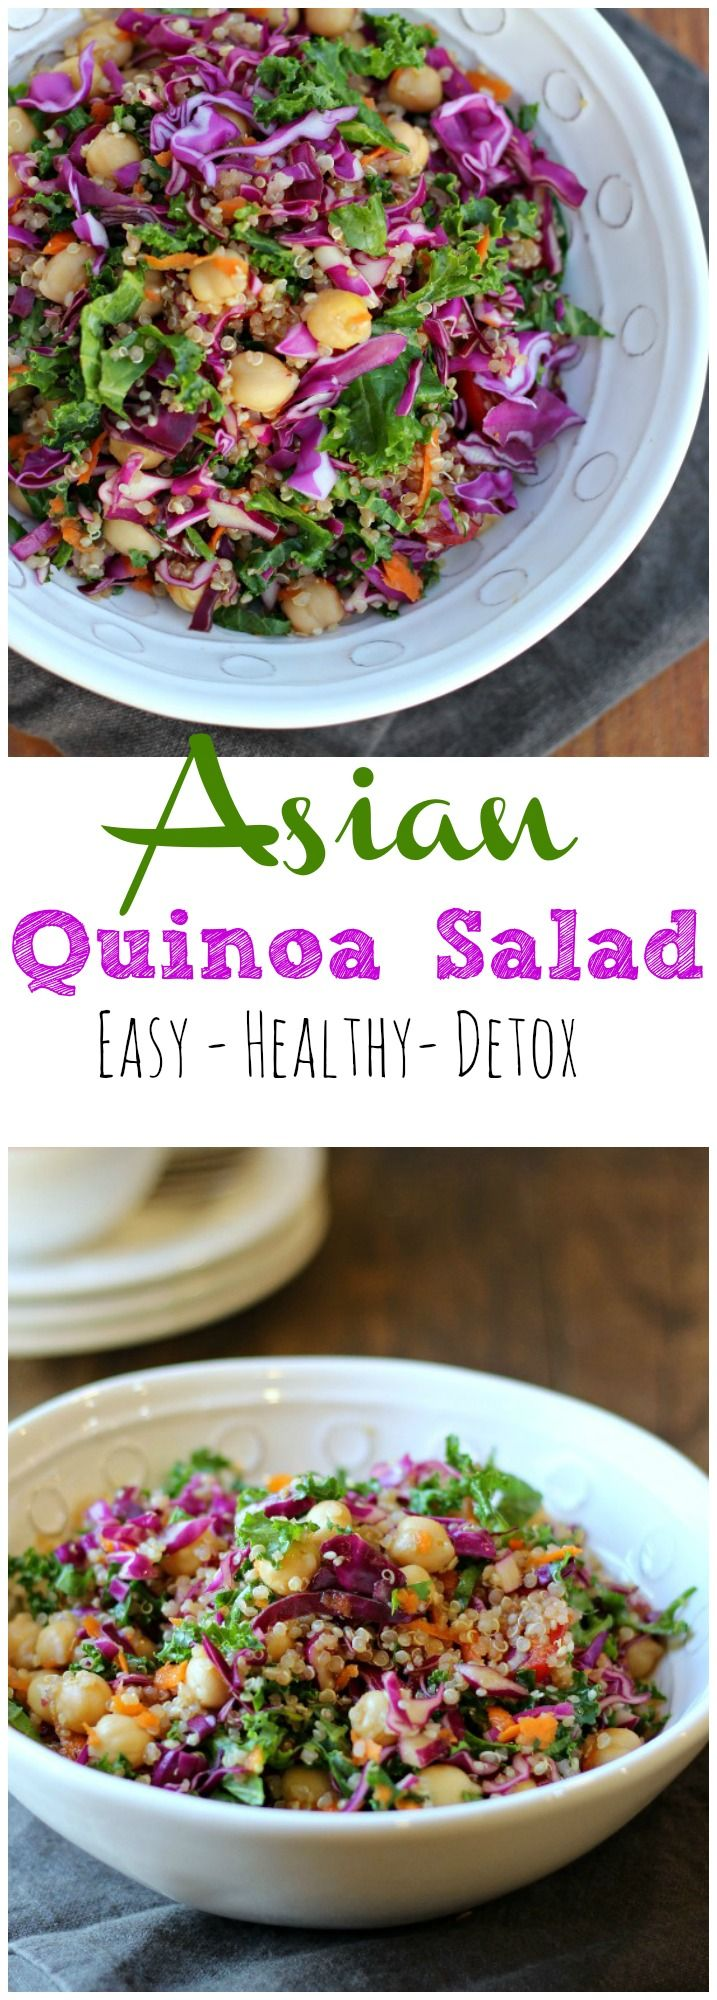 This Asian Quinoa Salad is packed with nutrient rich ingredients, so tasty and fresh you can not turn it down! gardeninthekitchen.com